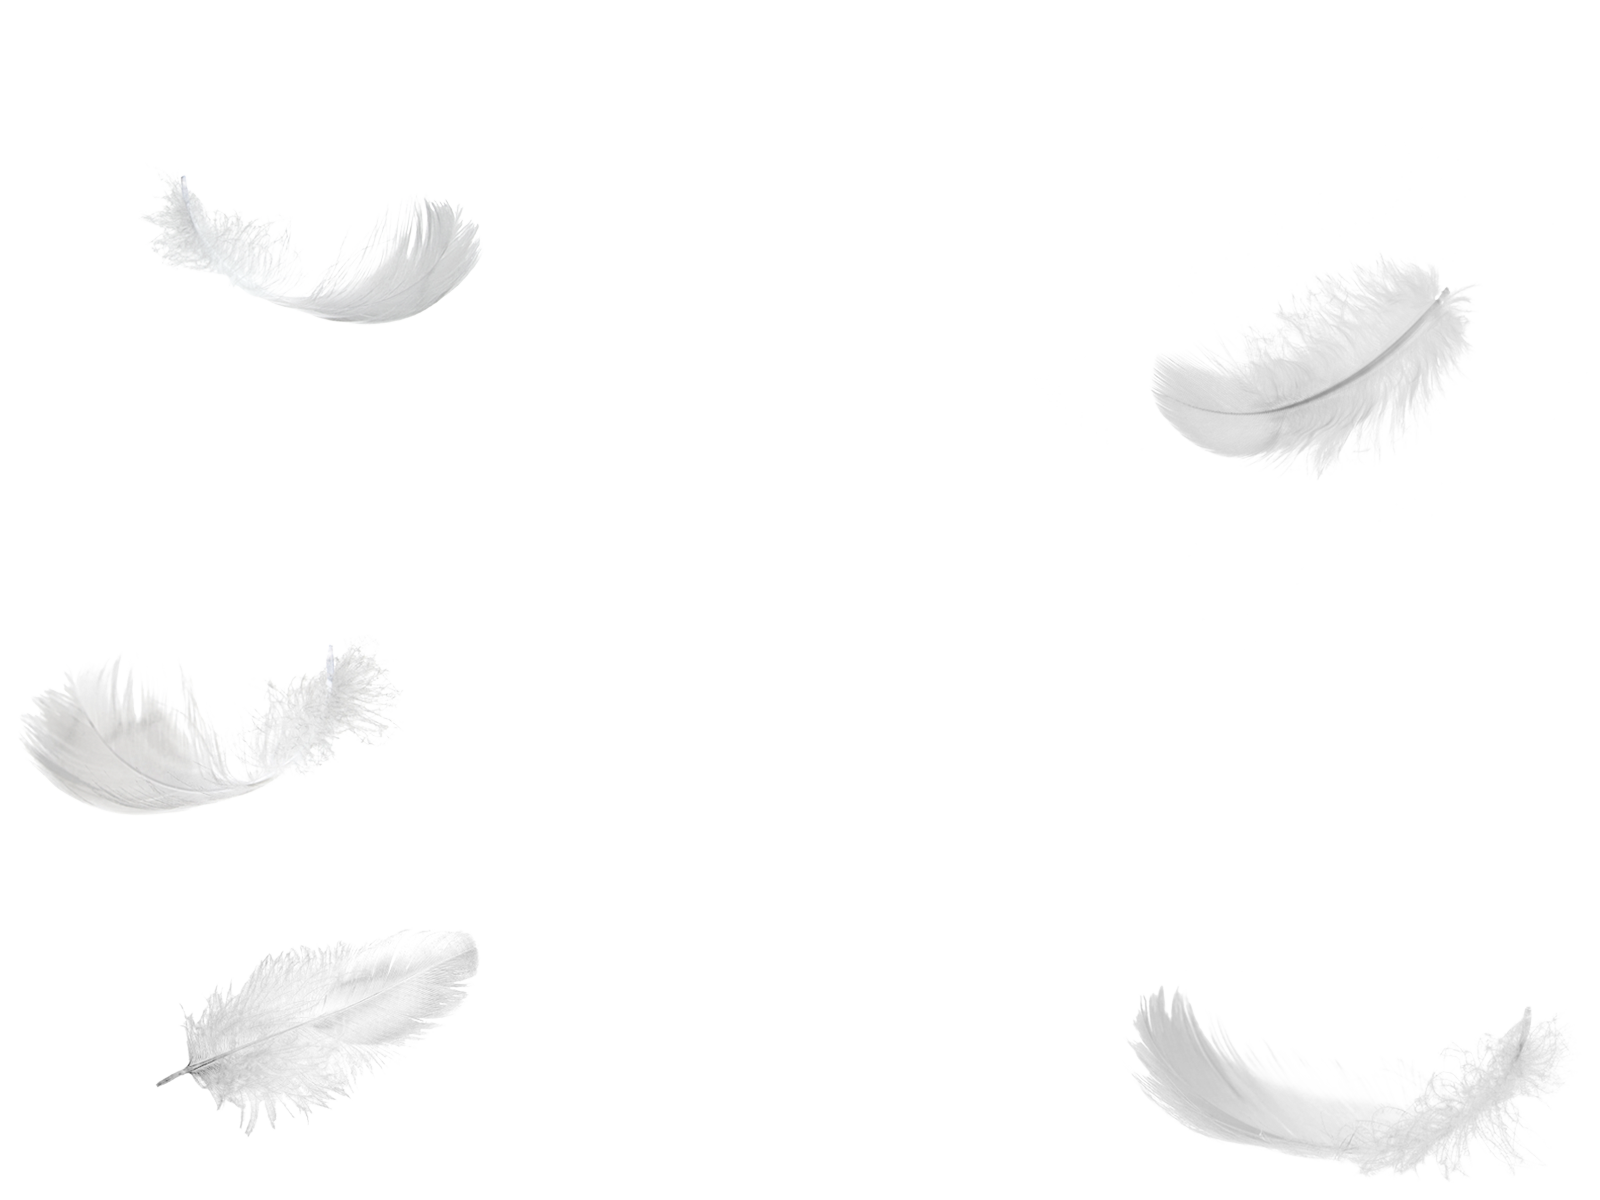 Angel feather png. Image feathers foreground animal